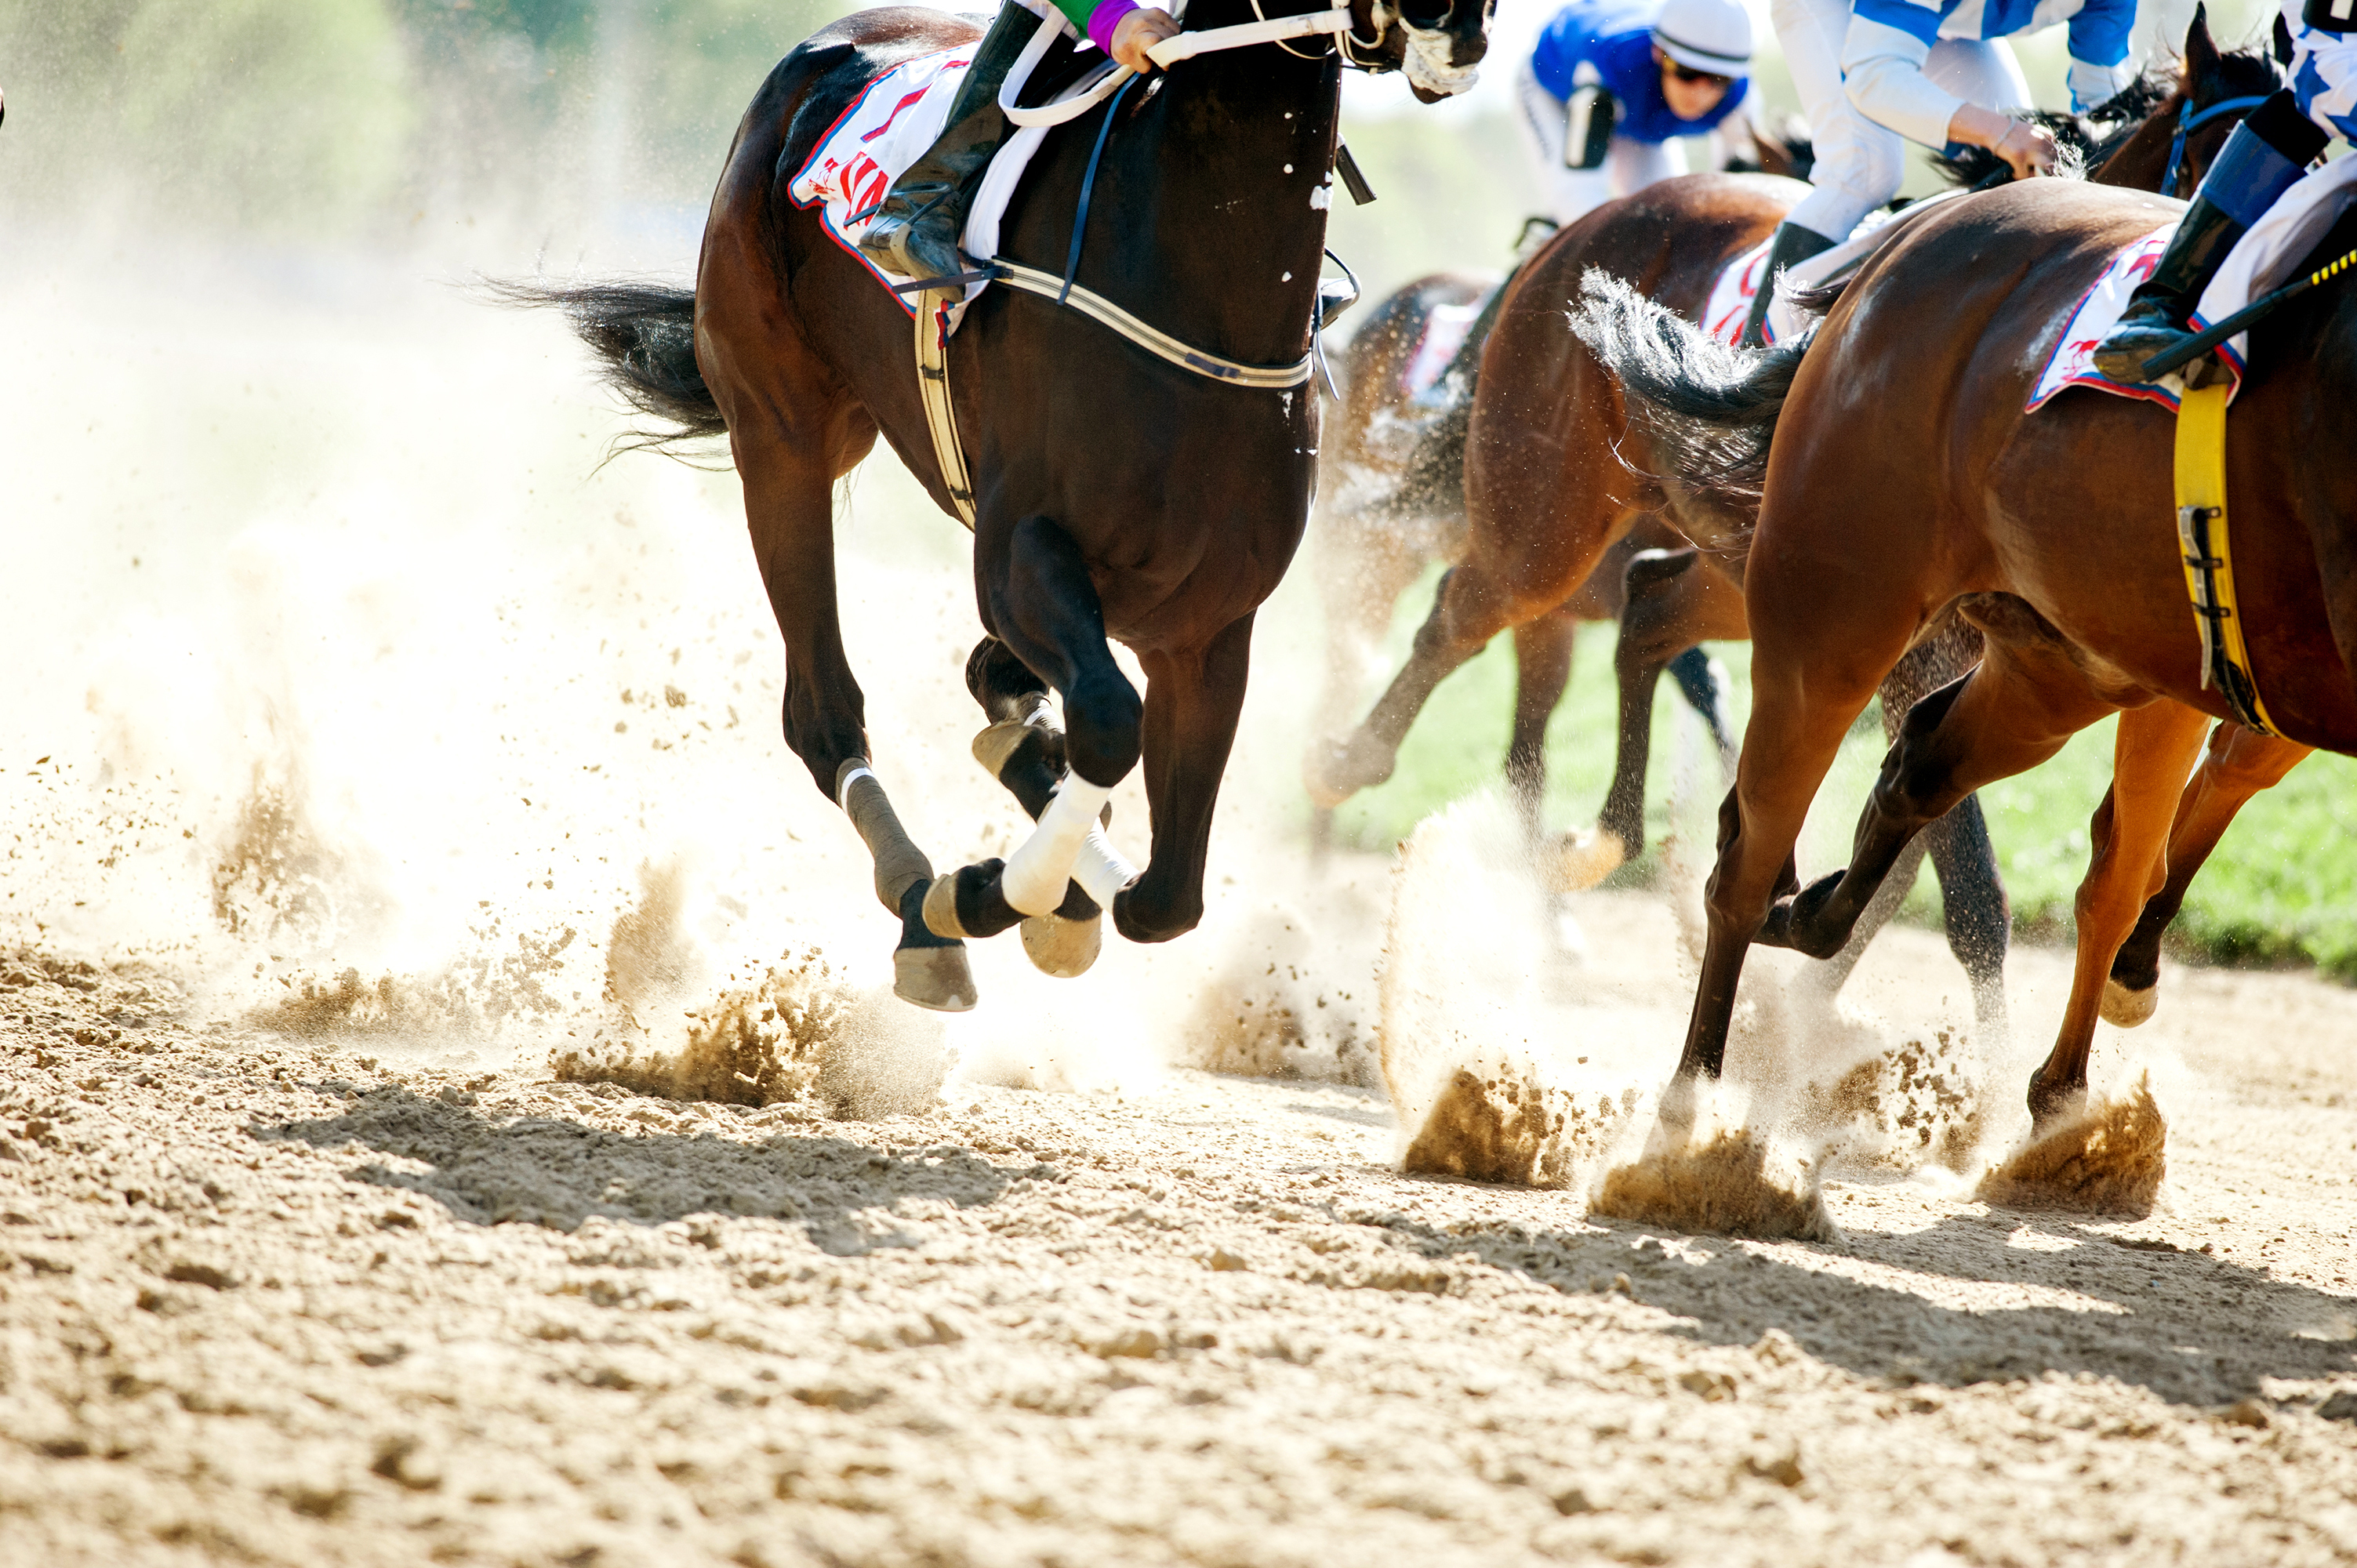 A startup that lets you race NFT horses has raised $20 million from a16z, TCG